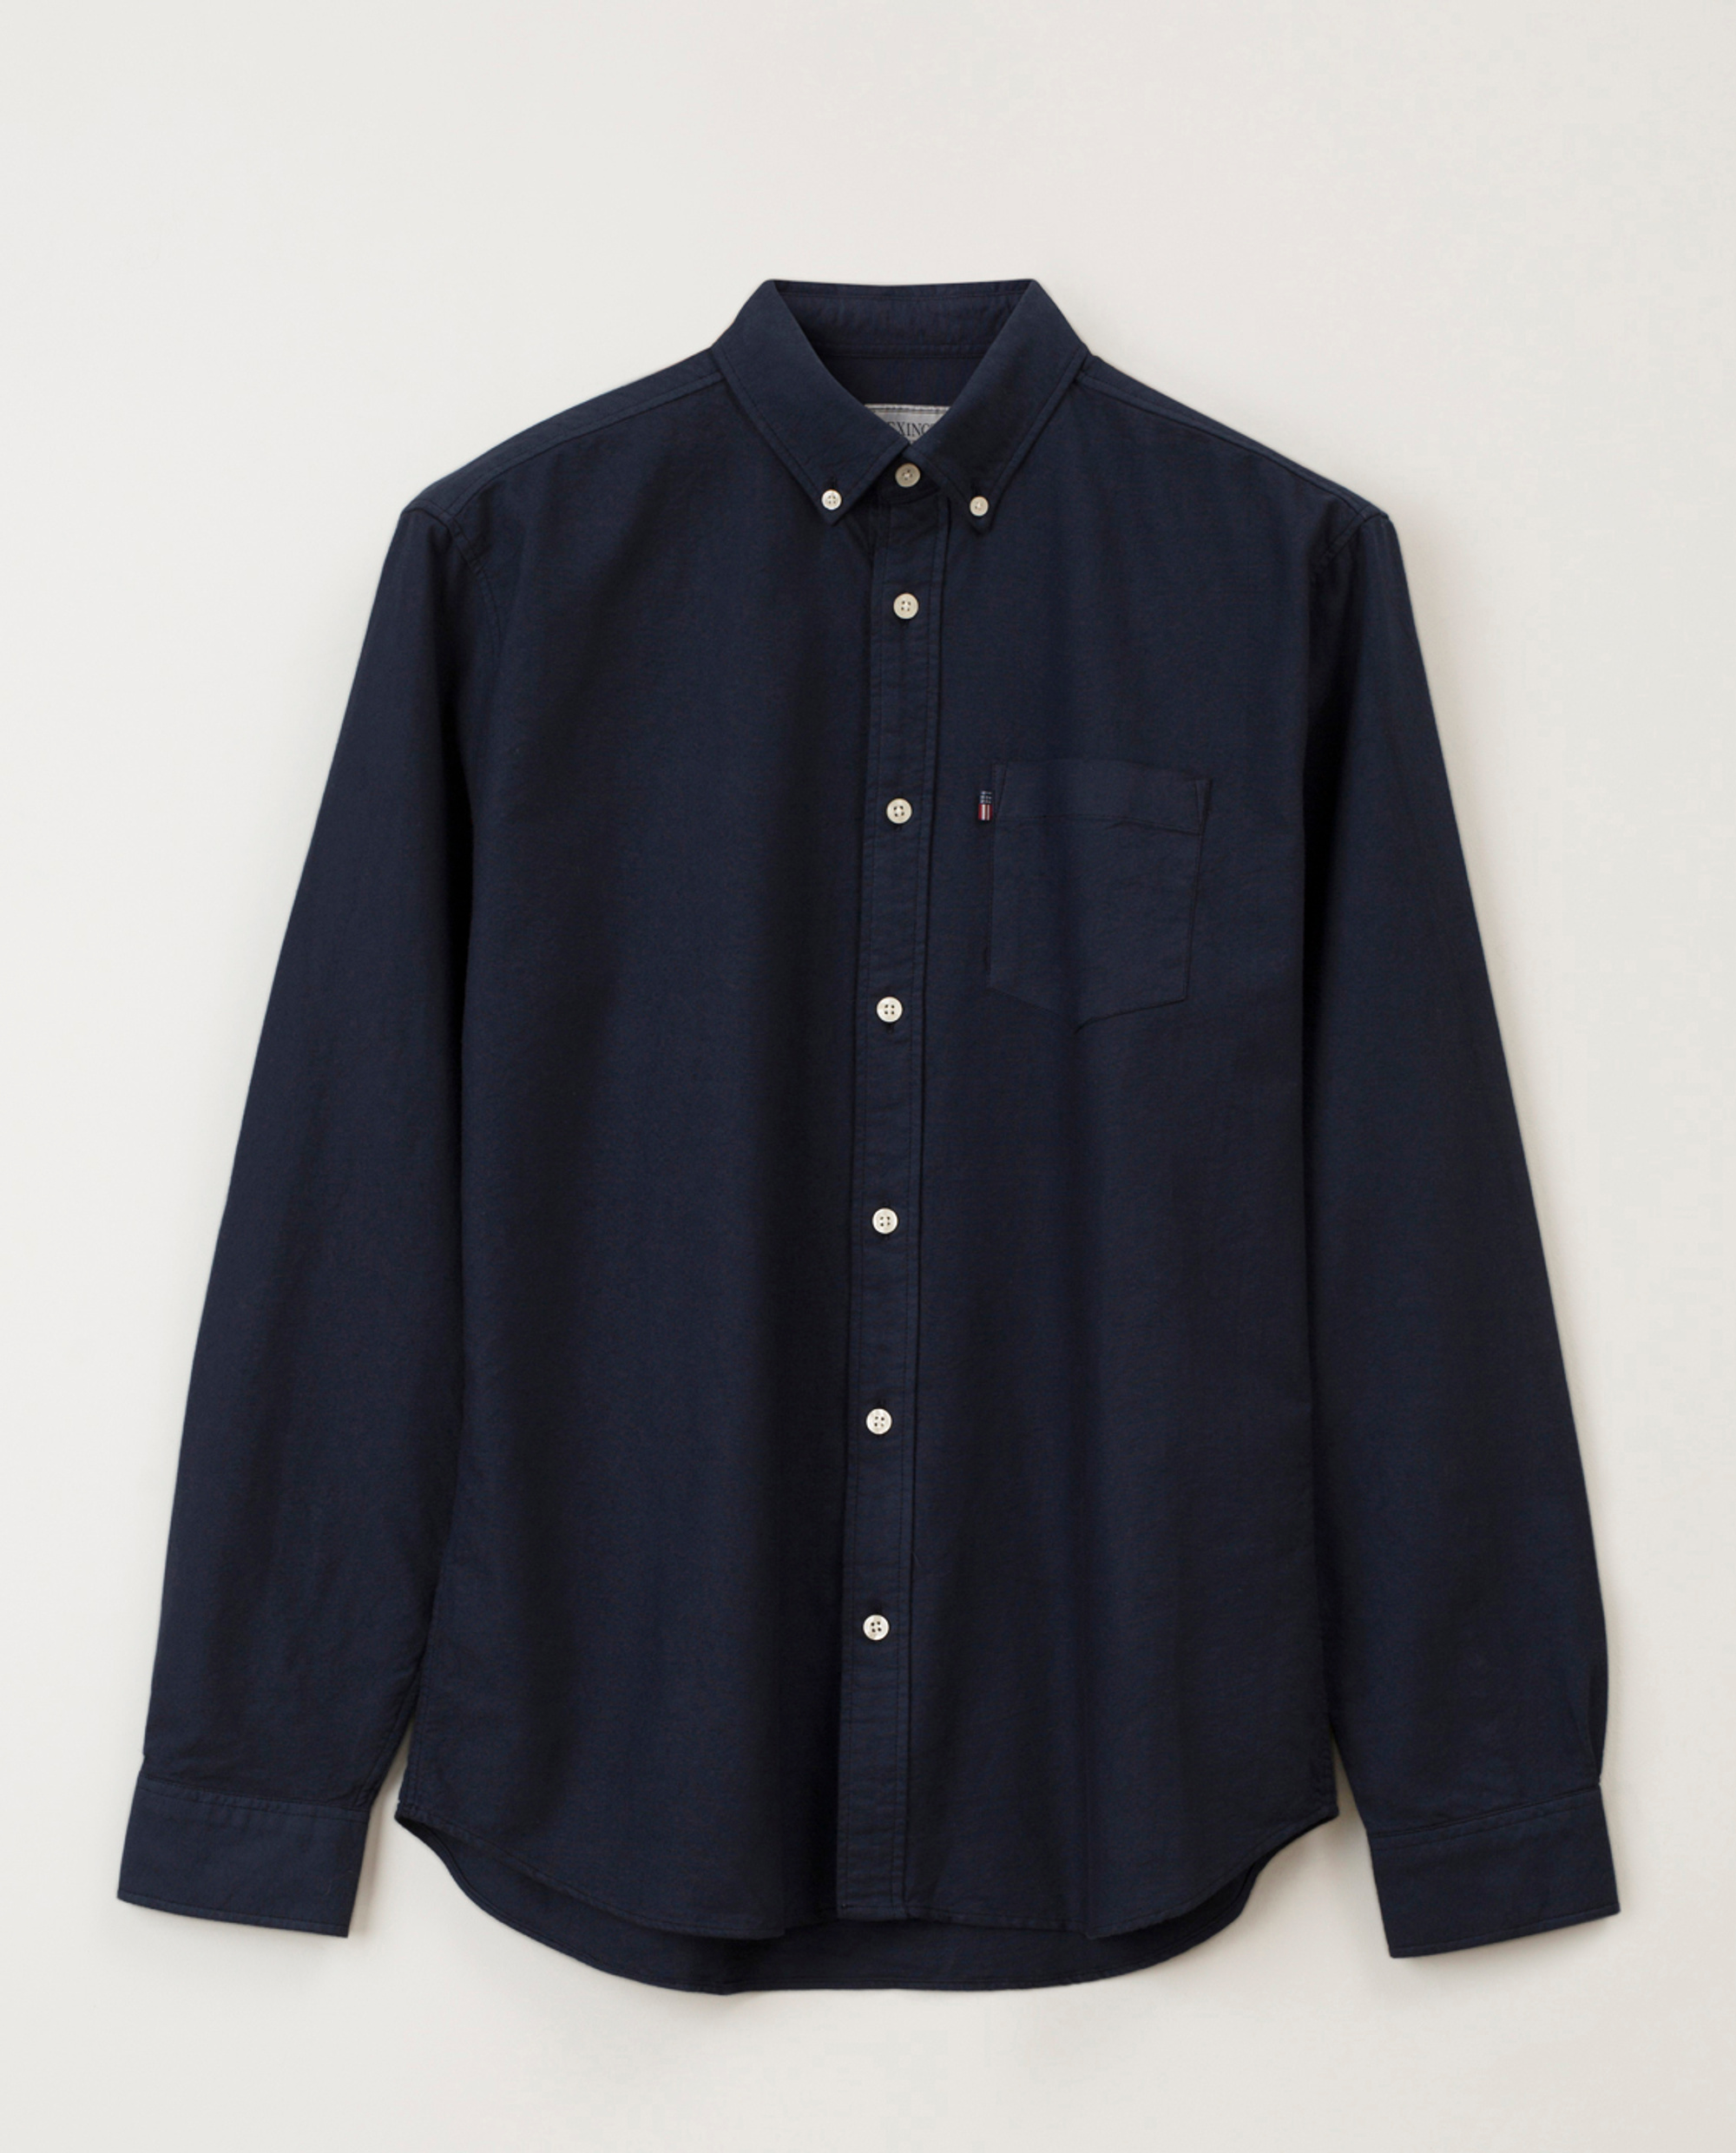 Kyle Oxford Organic Cotton Shirt, Dark Blue